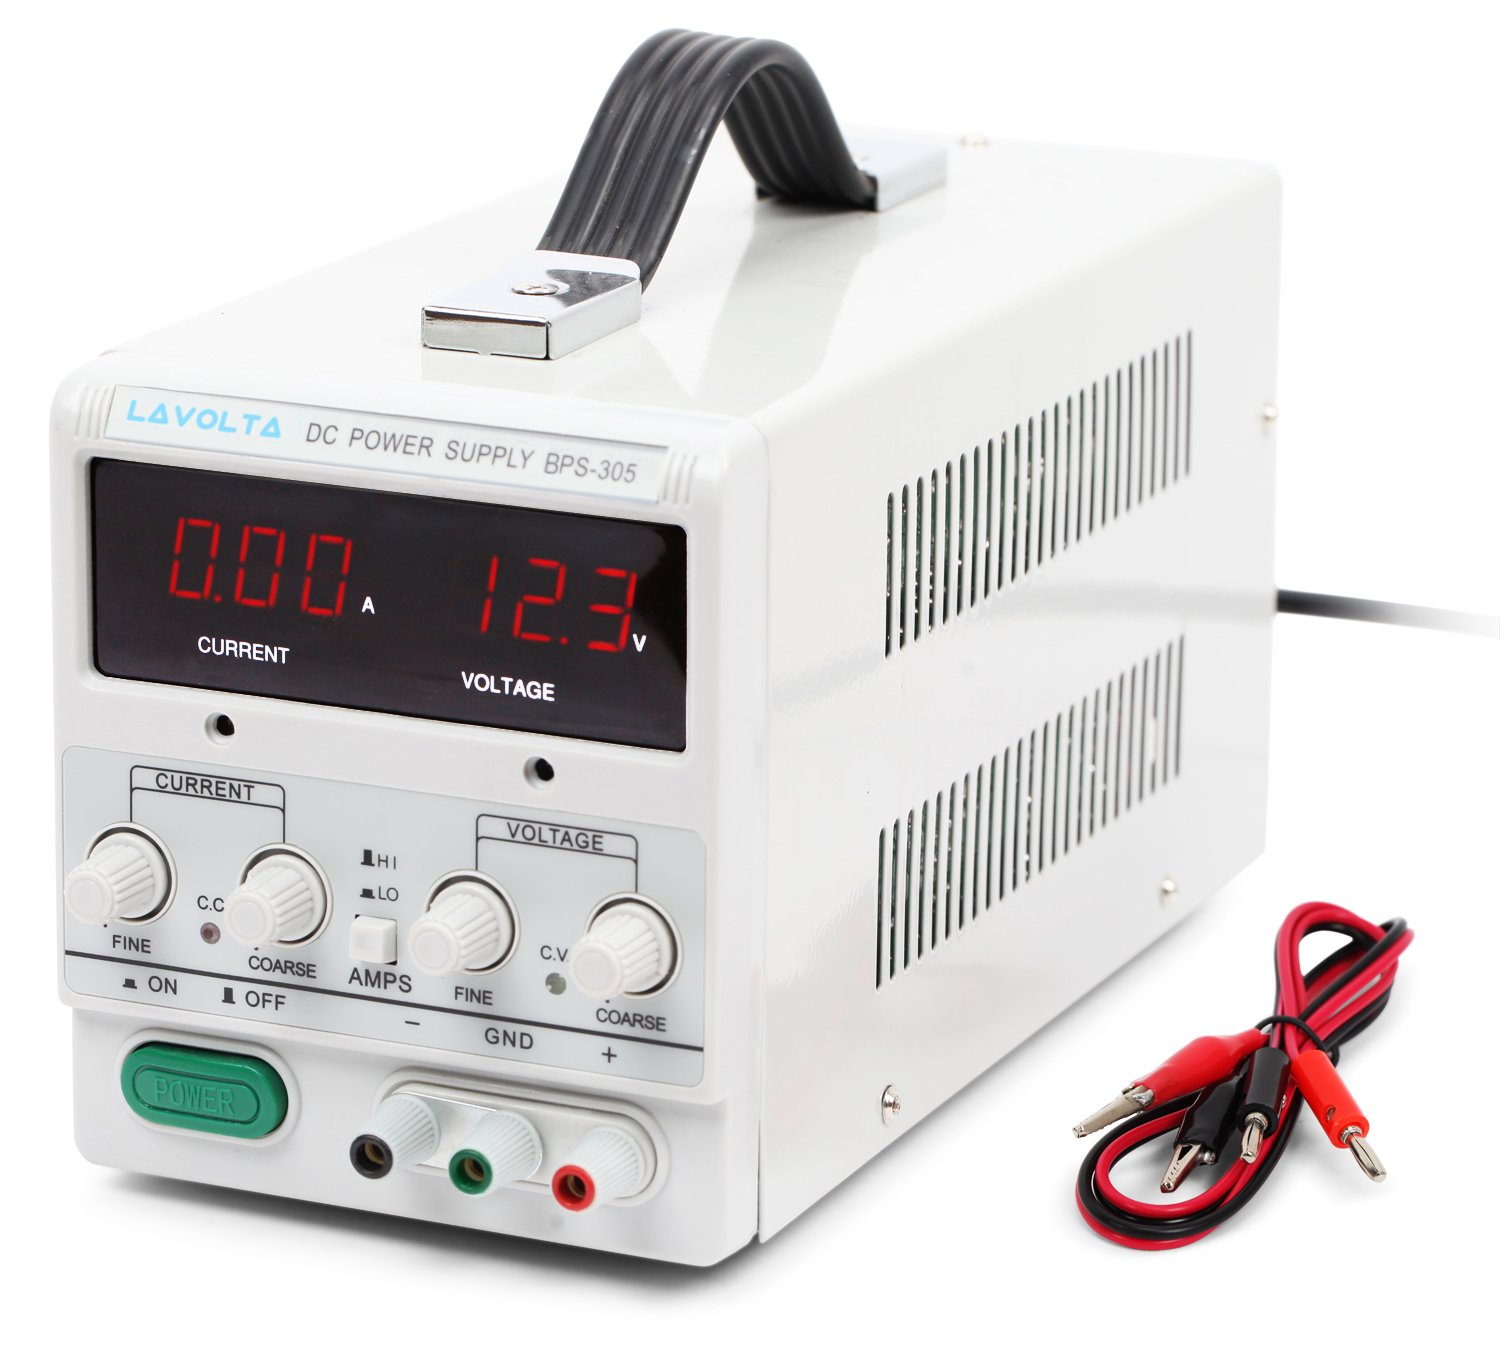 Lavolta Variable Linear DC Bench Power Supply 0 - 30V 0 - 5A - Regulated  Adjustable Precision Lab Kit BPS305